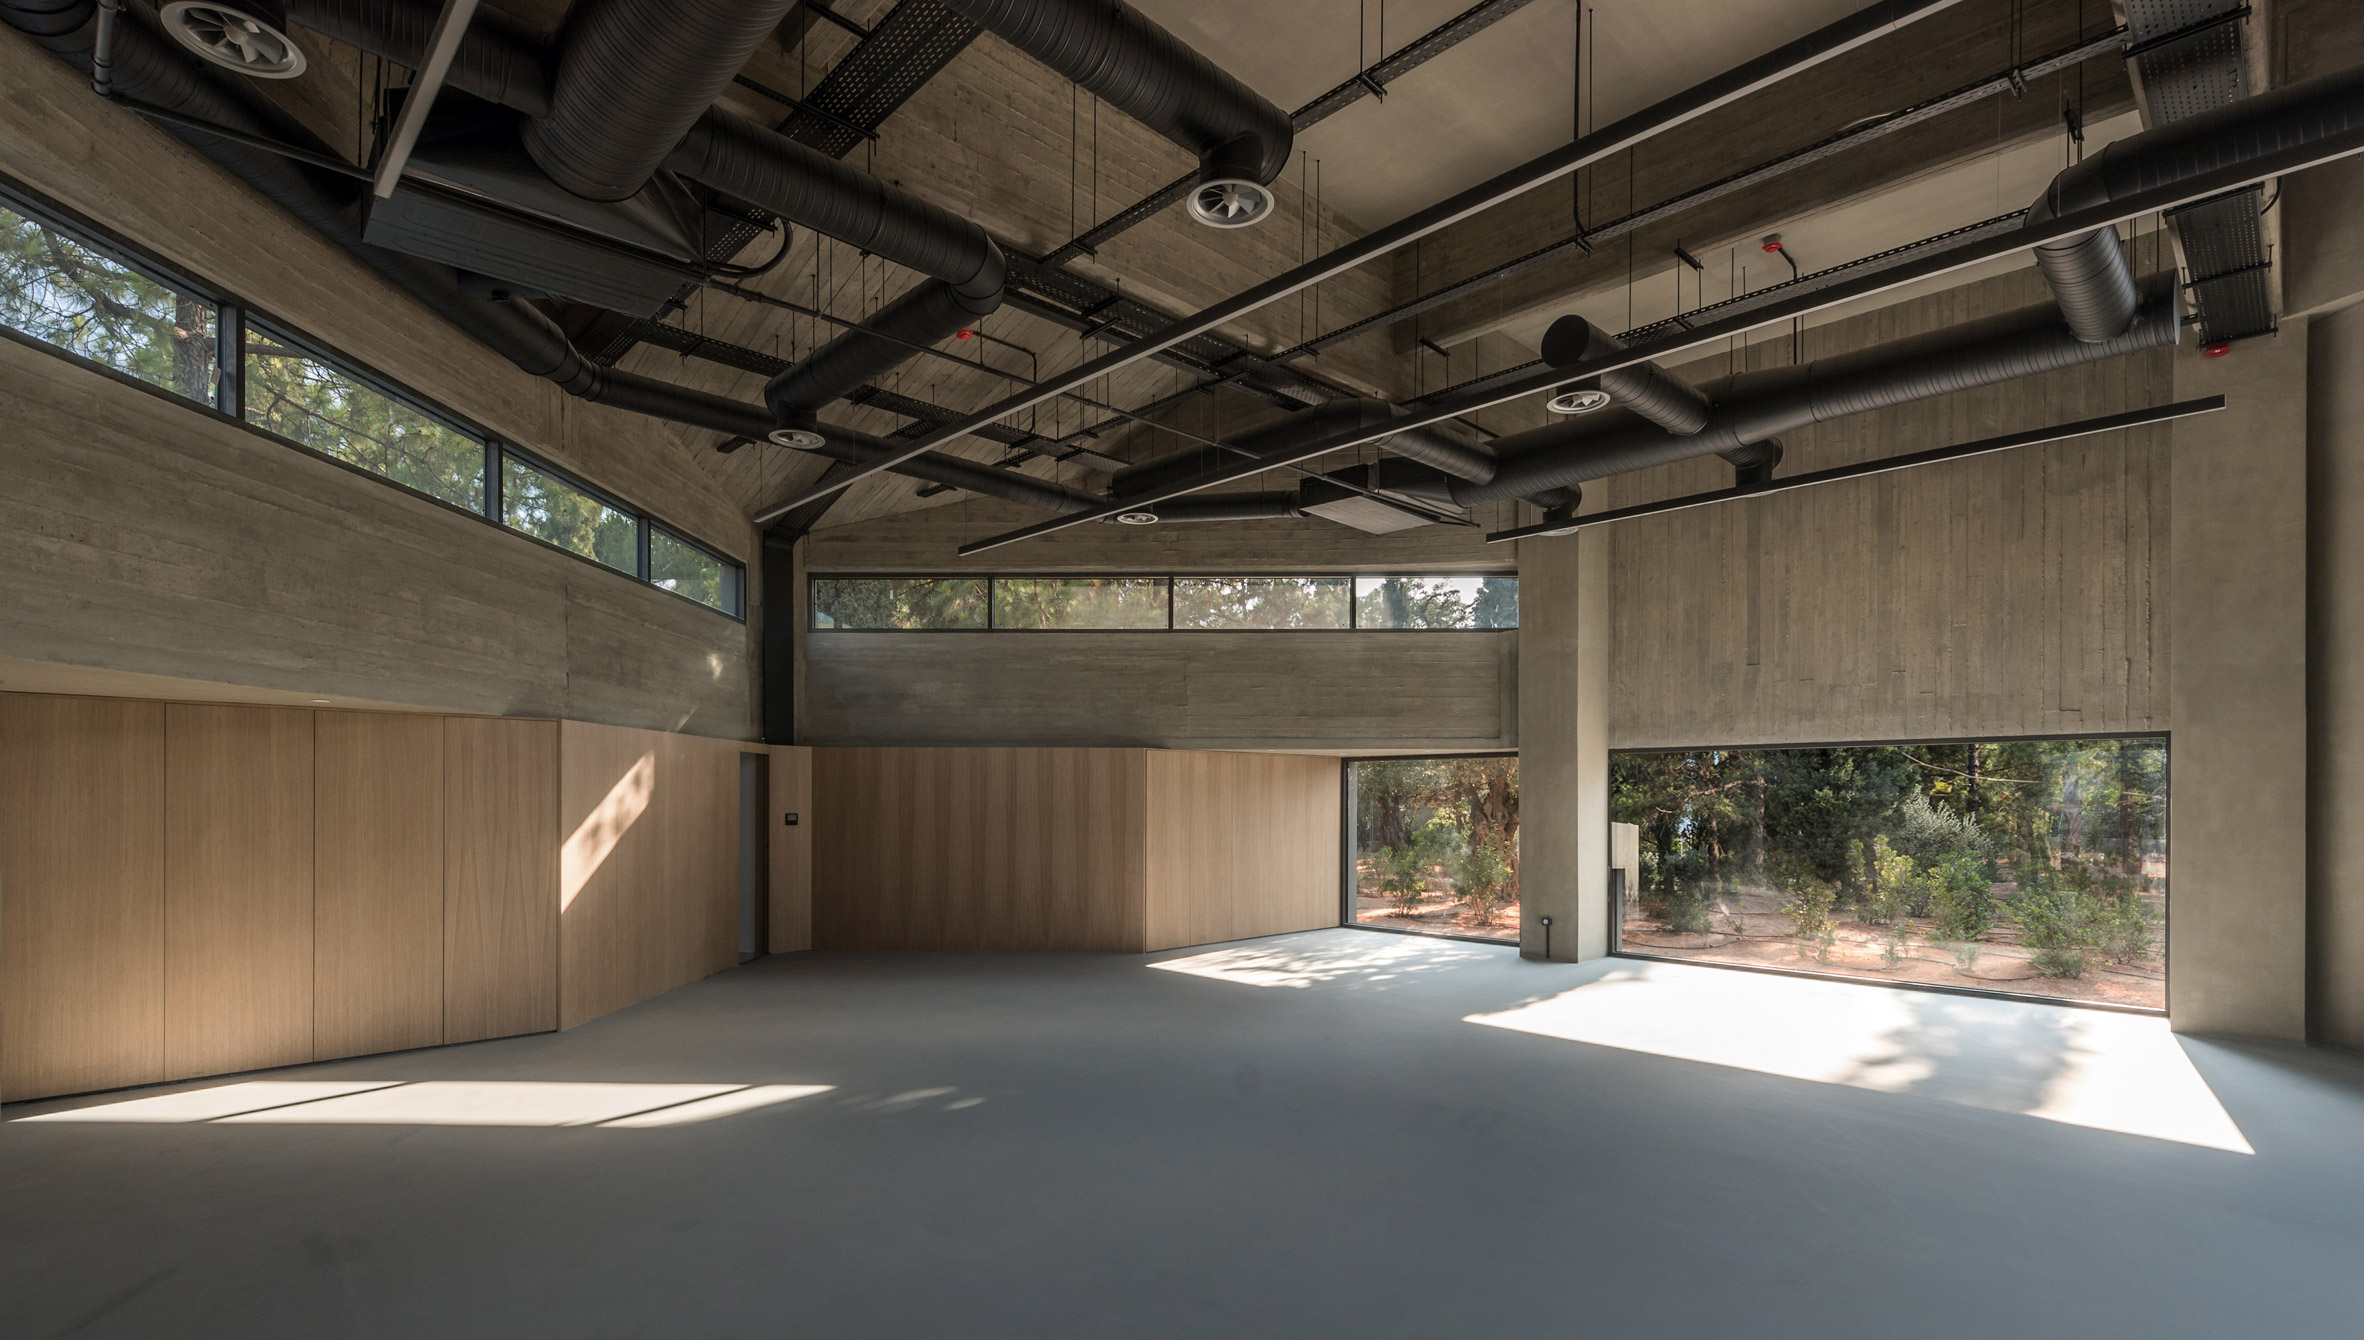 A concrete-lined events space